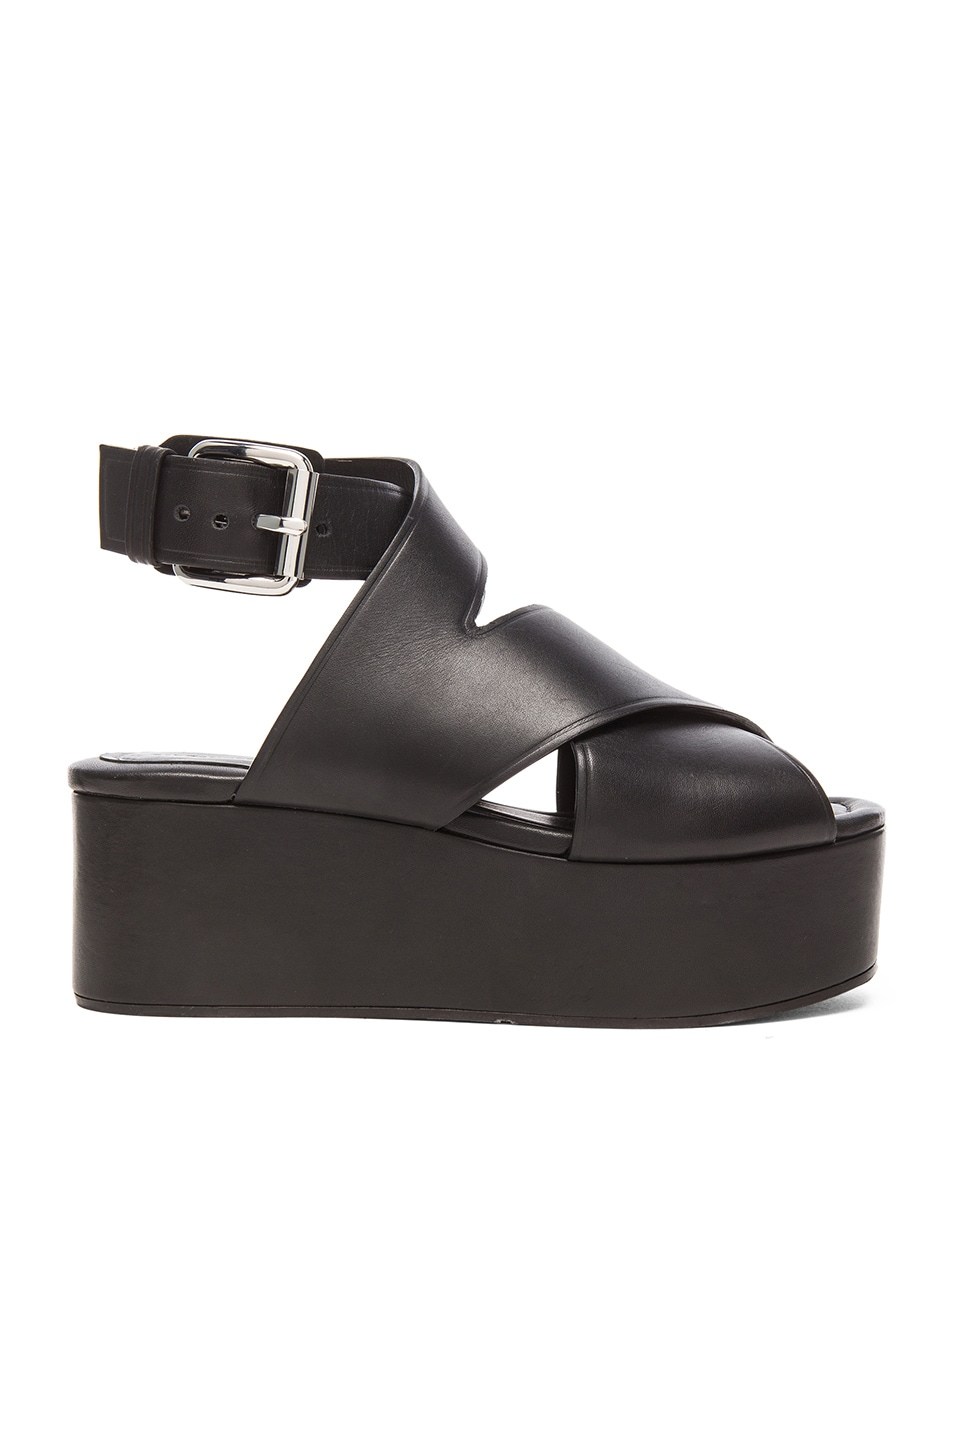 Image 1 of Alexander Wang Rudy Leather Platform Sandals in Black